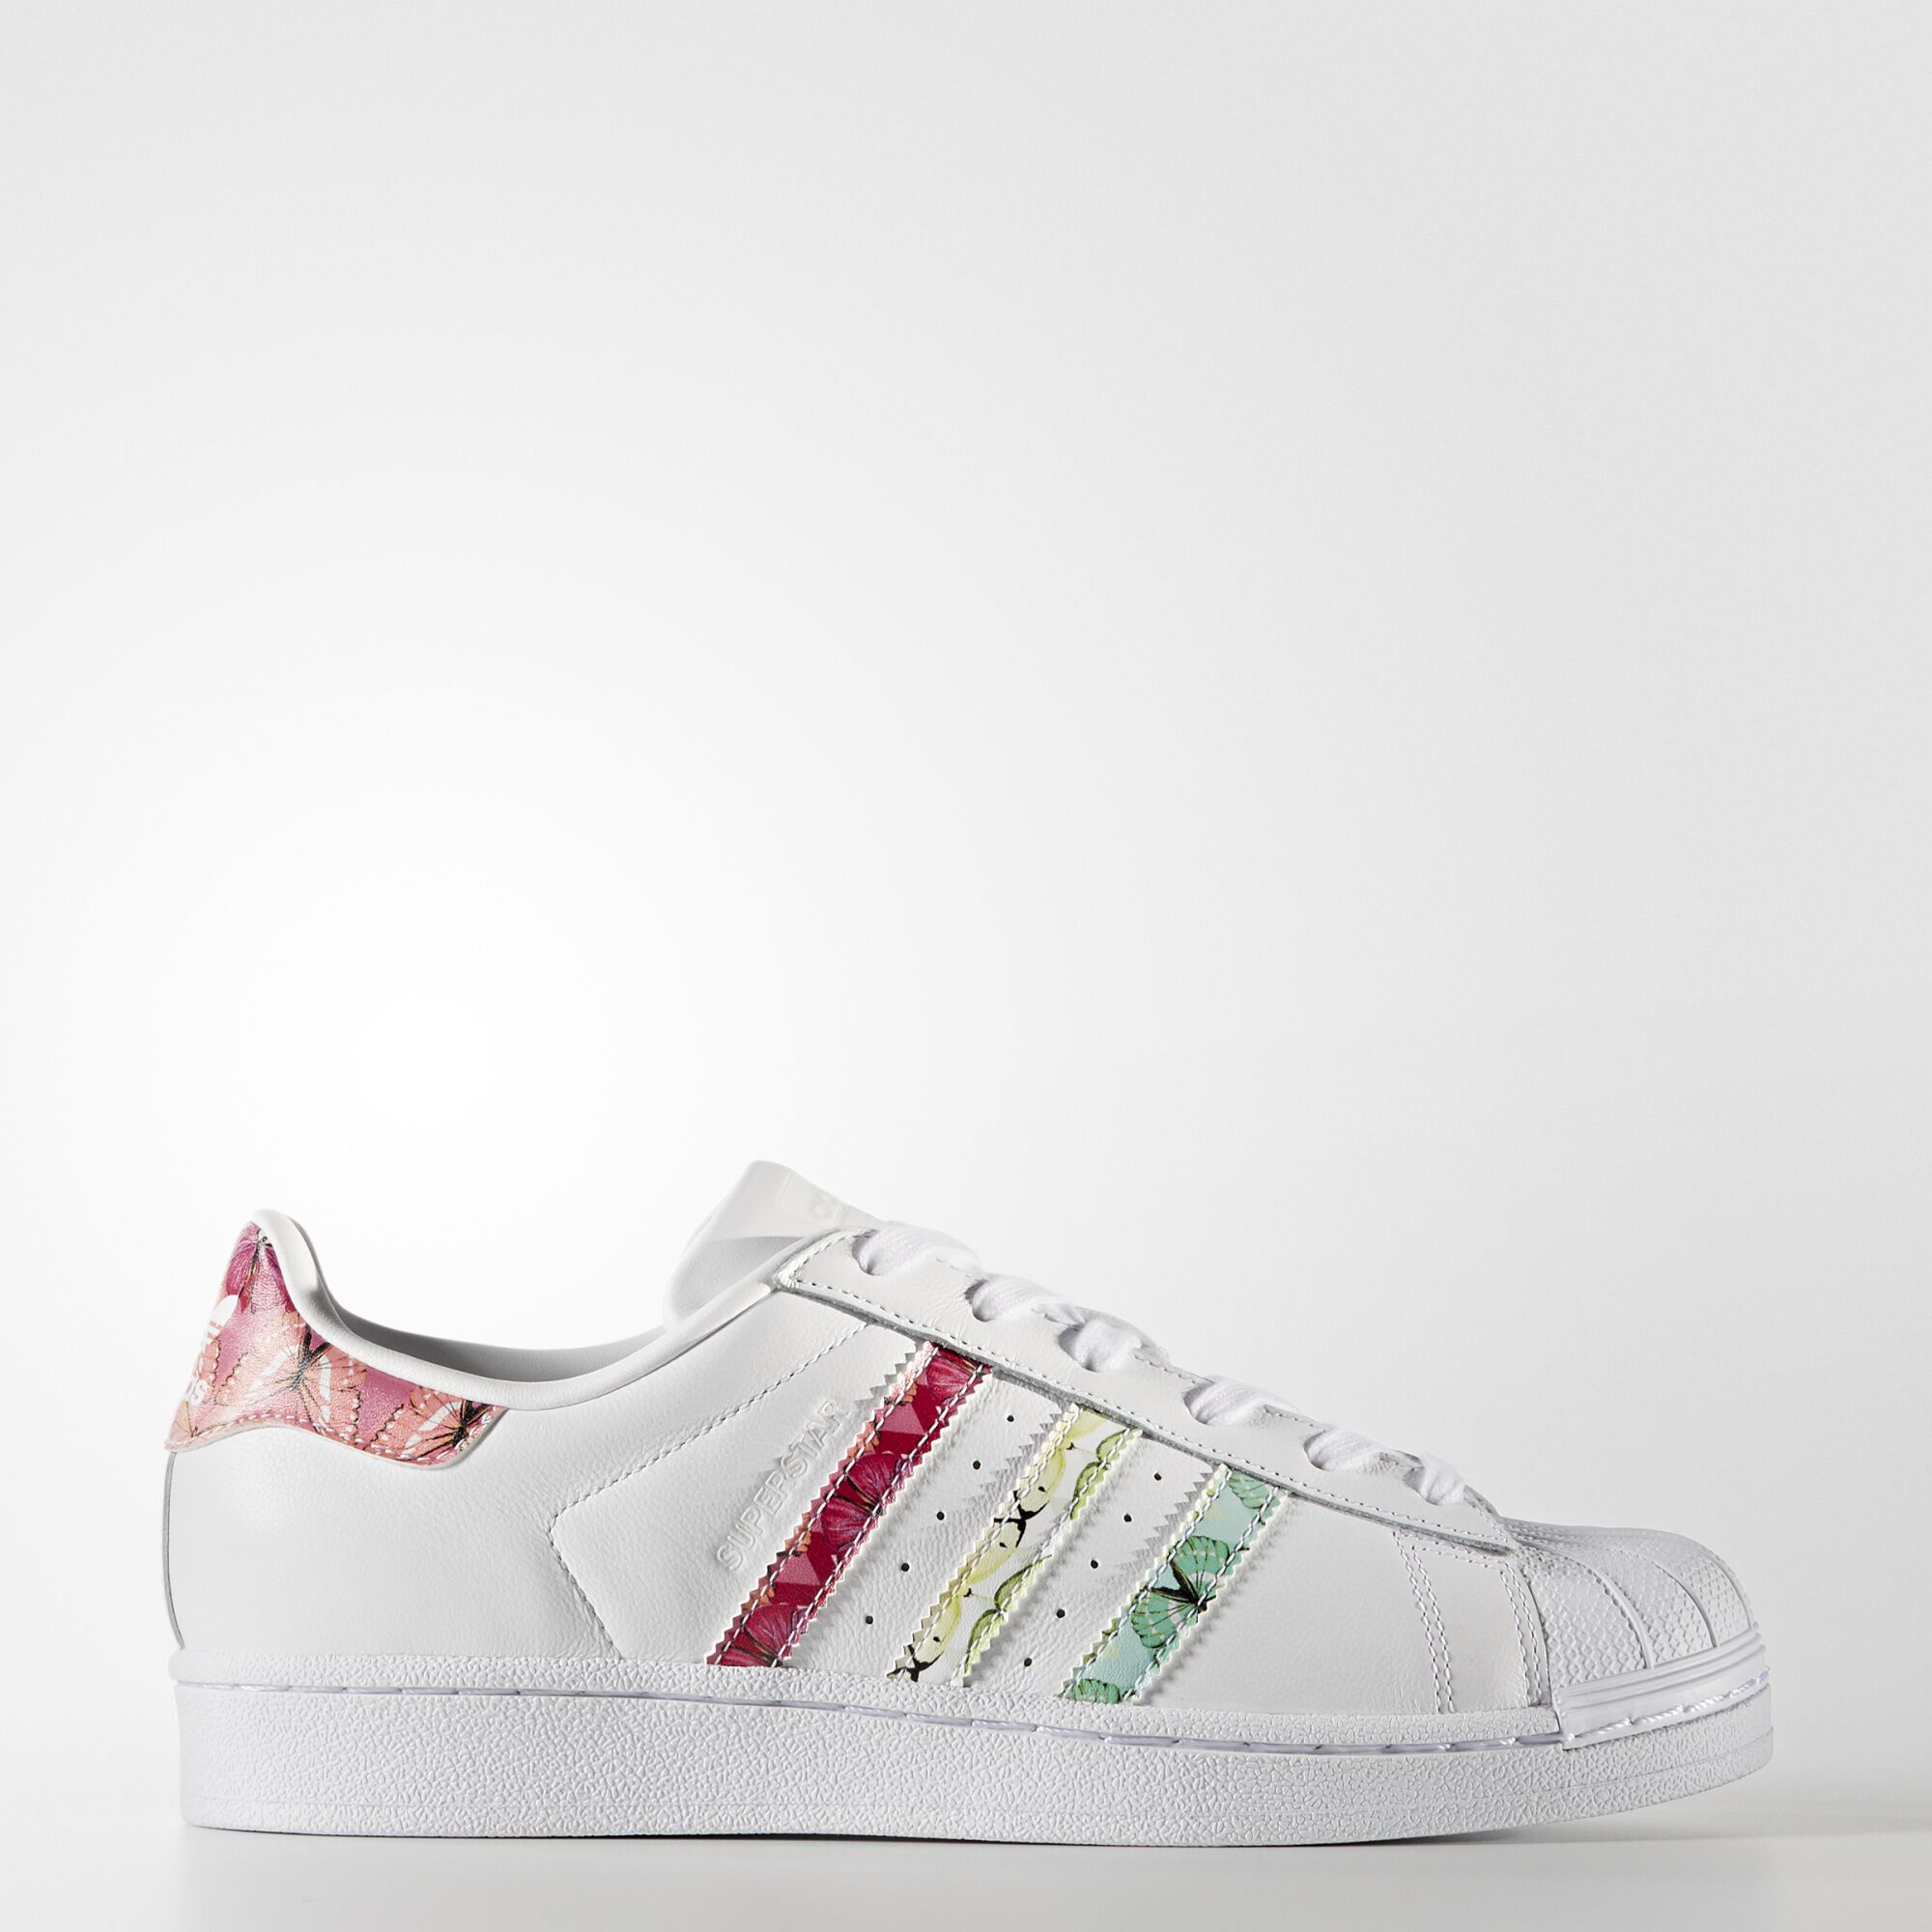 adidas Superstar W Womens Trainers Black Floral Shoes 6 UK